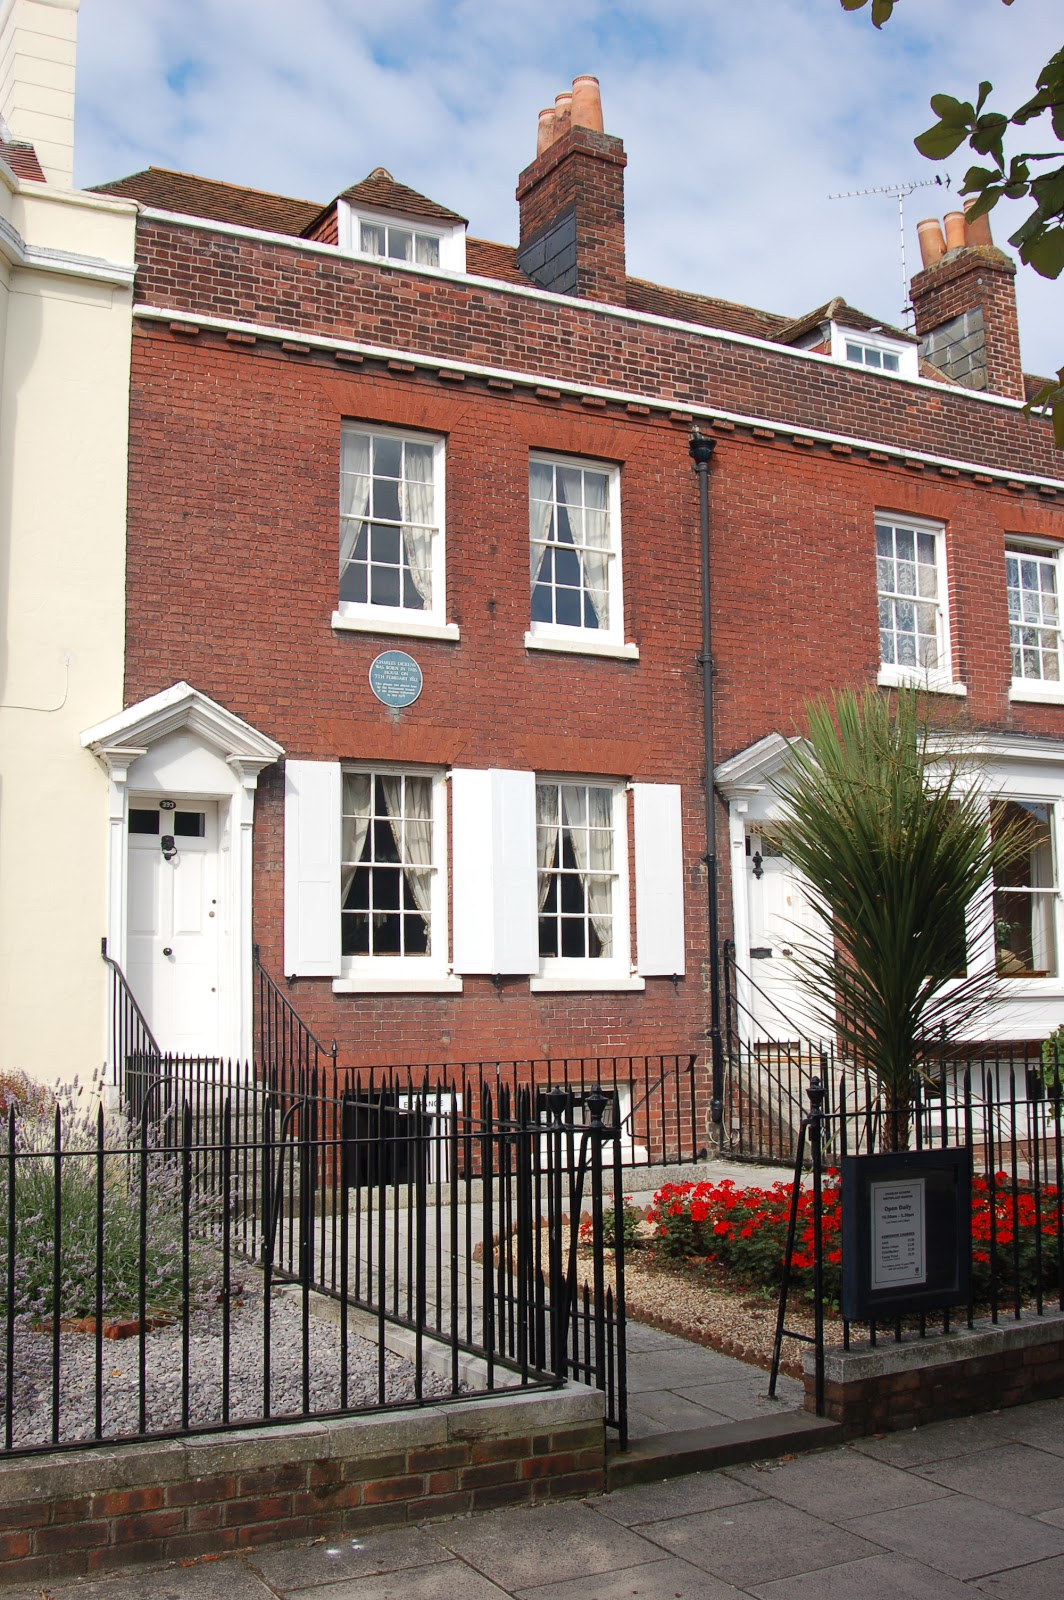 baugh s blog photo essay the homes of charles dickens entrance of dickens s birthplace museum in portsmouth